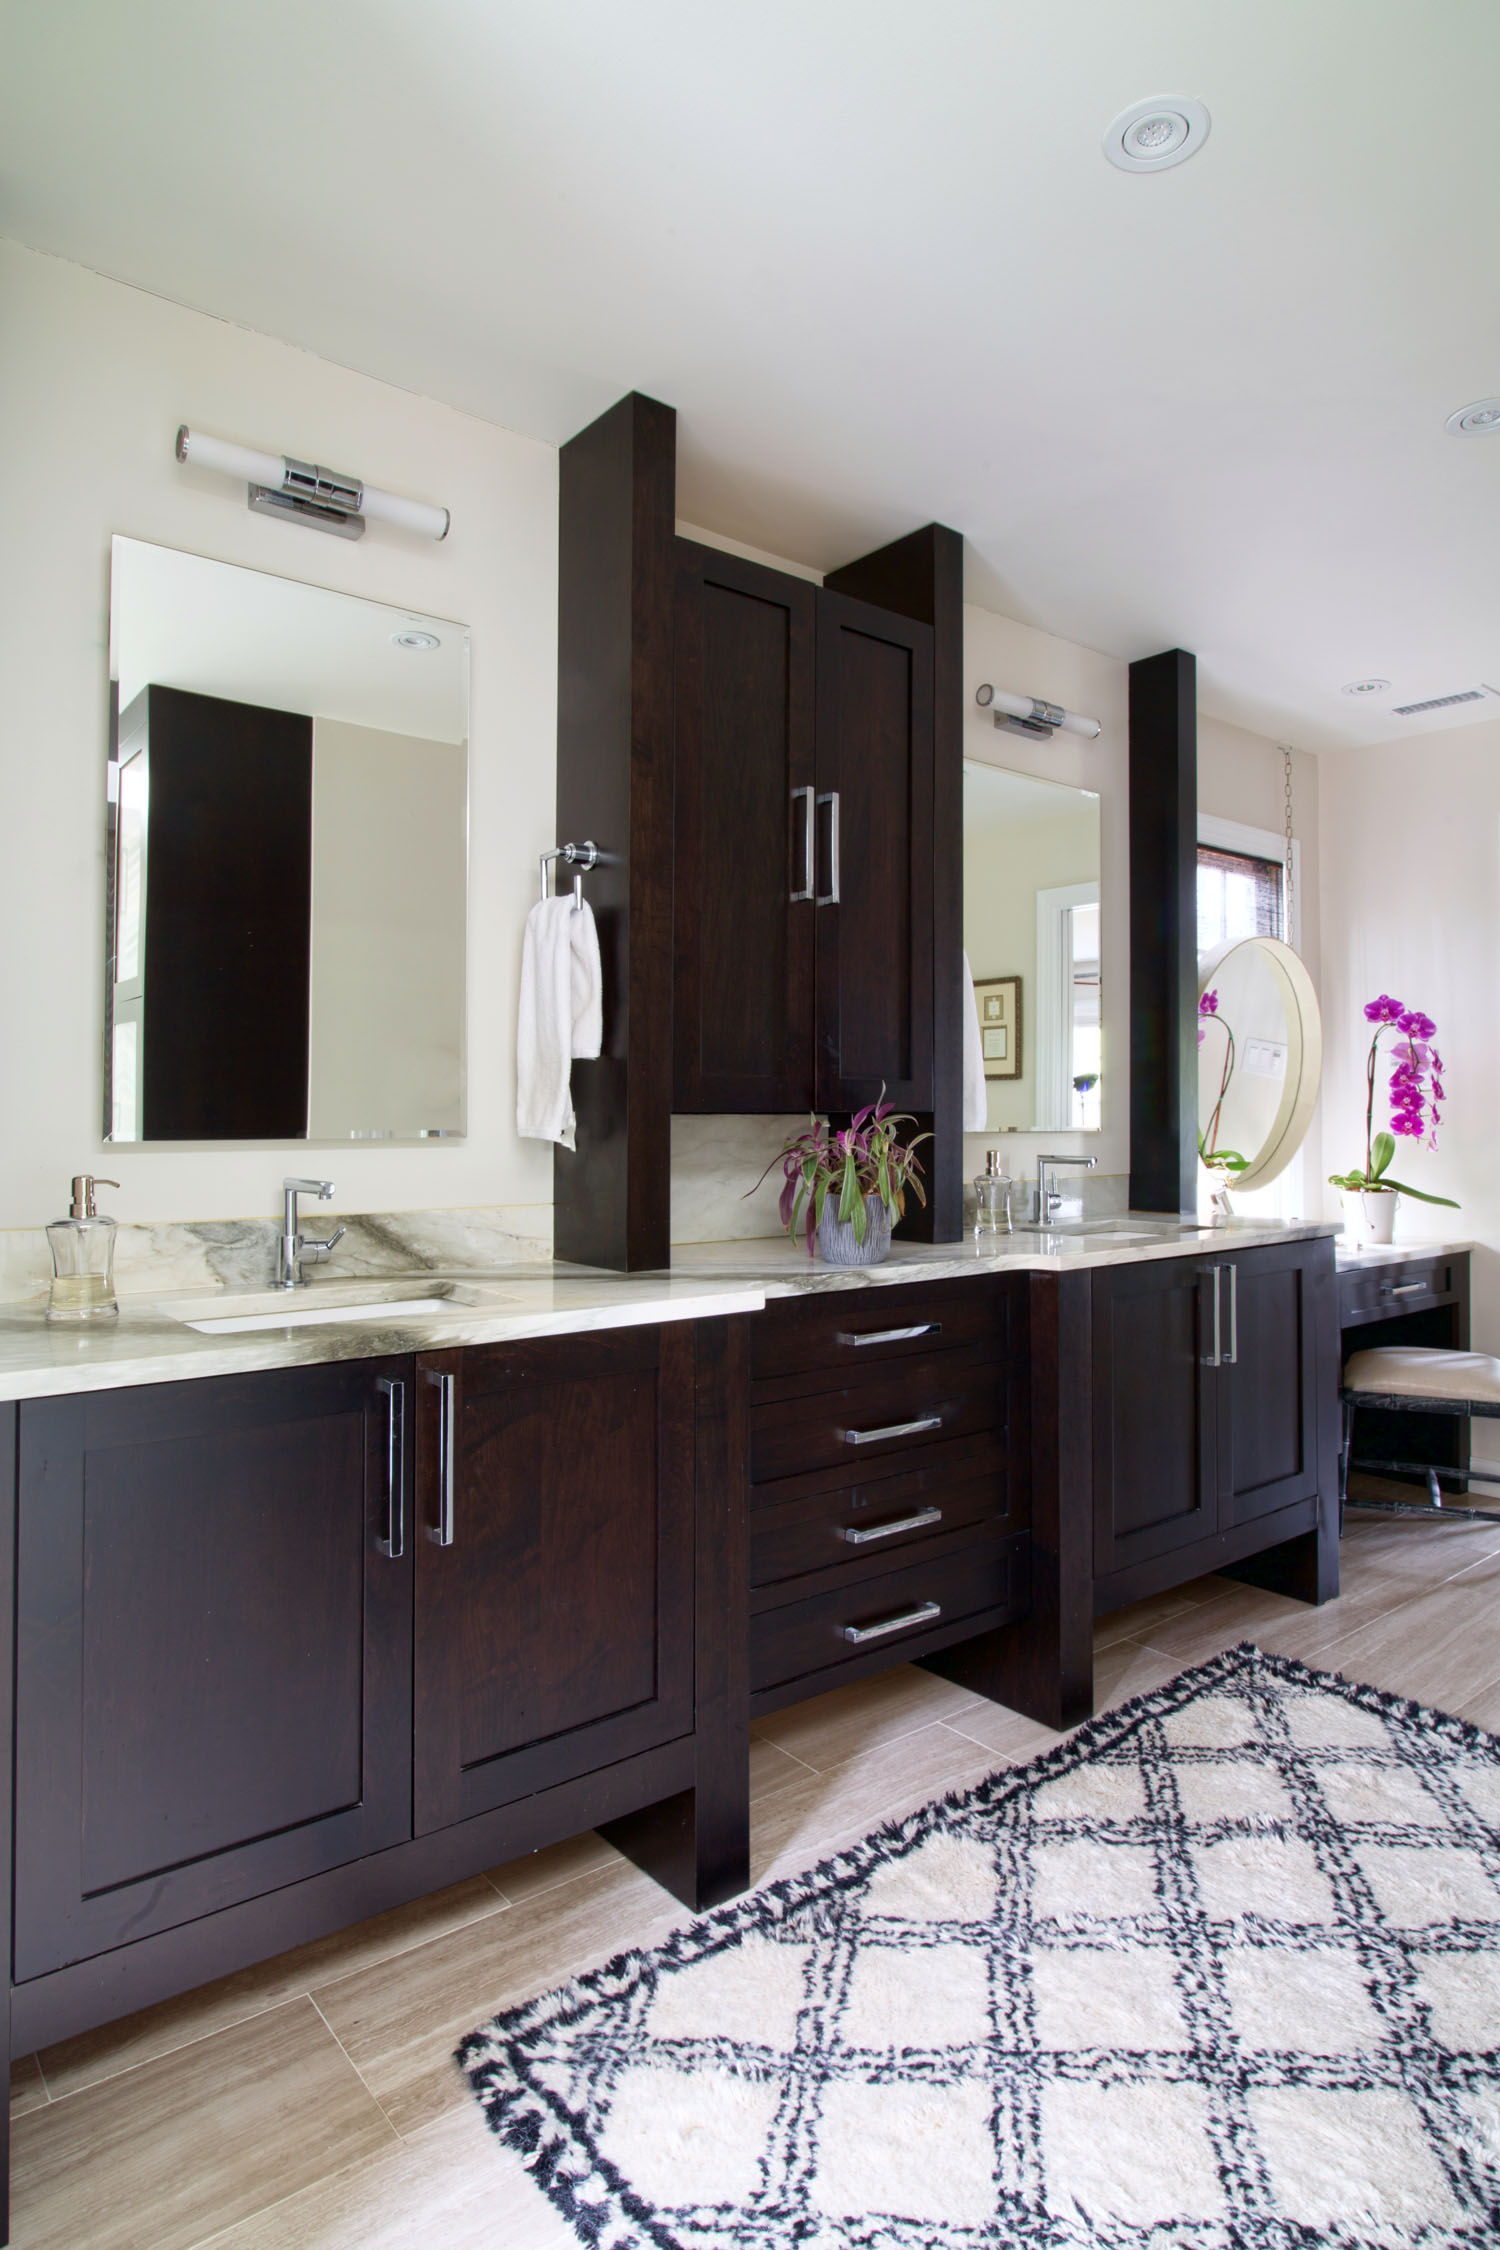 Barrington_MasterBath2.jpg